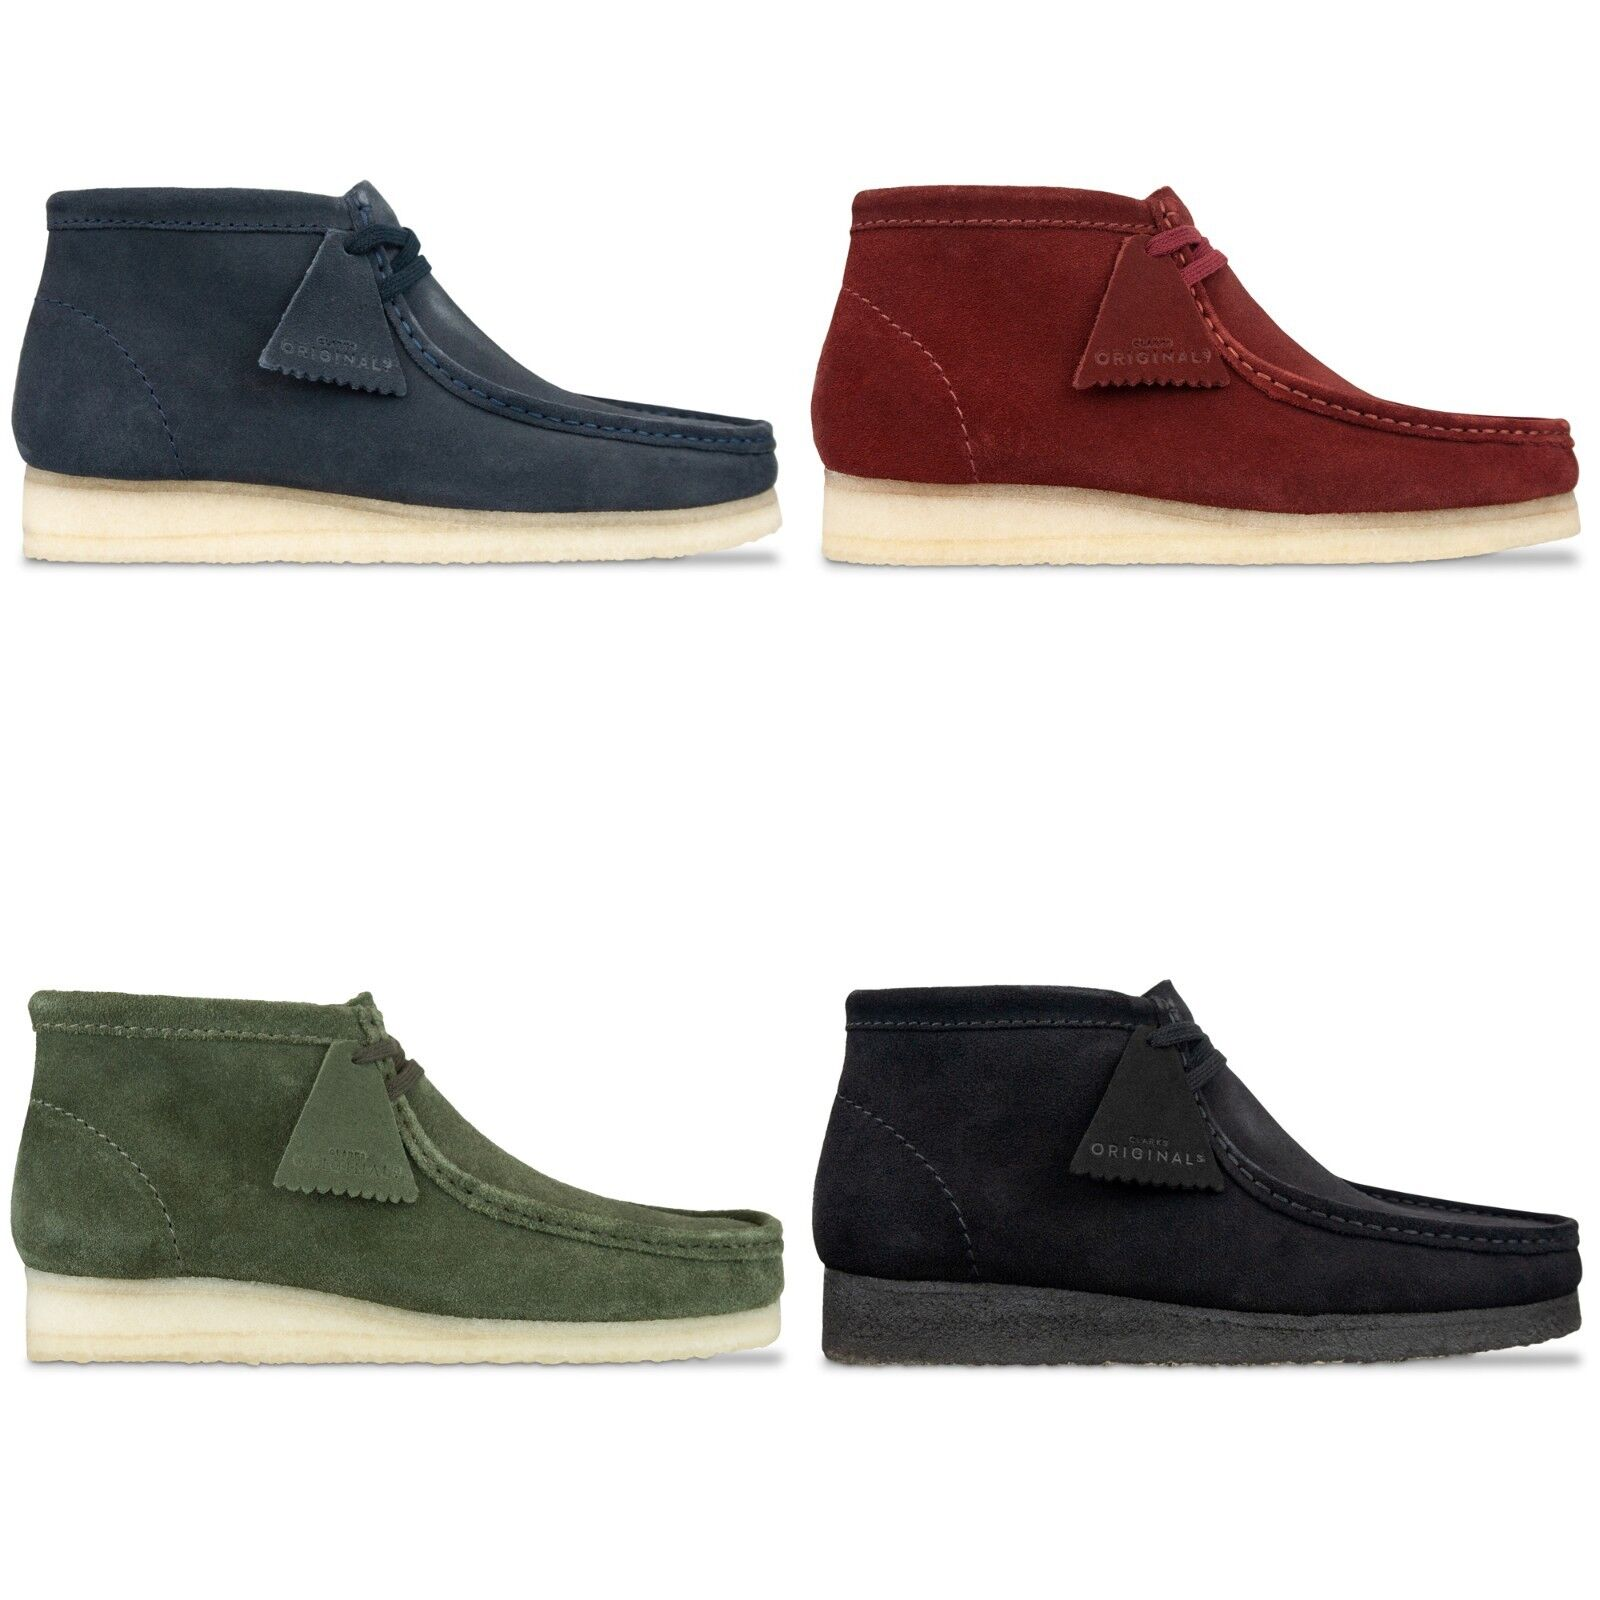 Clerchen Originals - Clerchen Originals Wallabees Stiefel - Schwarz, Blau, Nussbraun